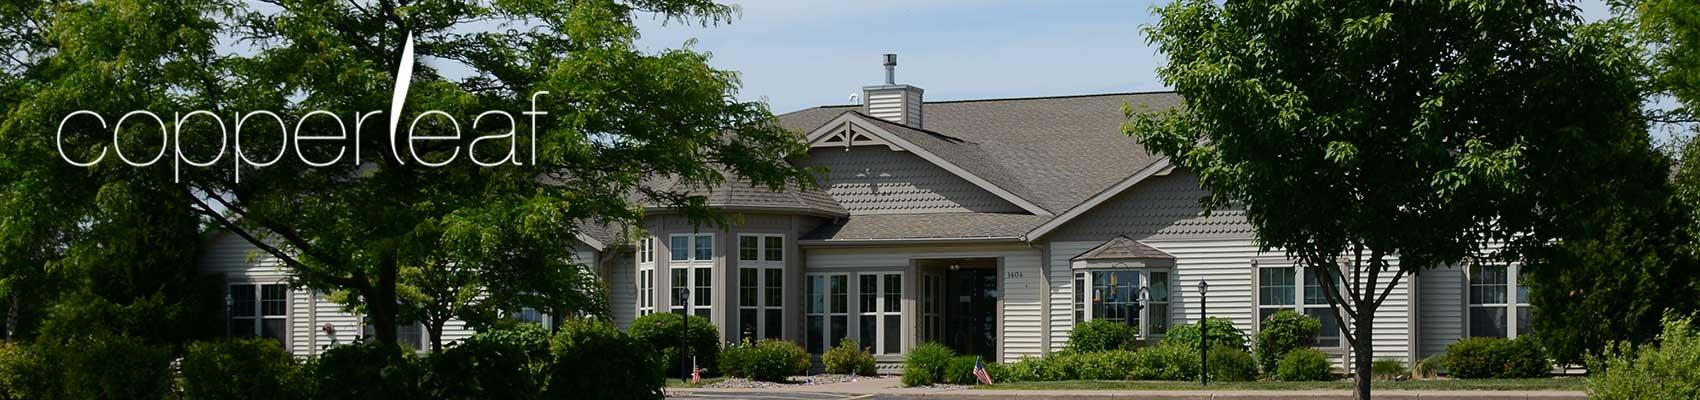 Assisted Living assisted living facilities Hopokoekau Beach Wisconsin Fond du Lac County